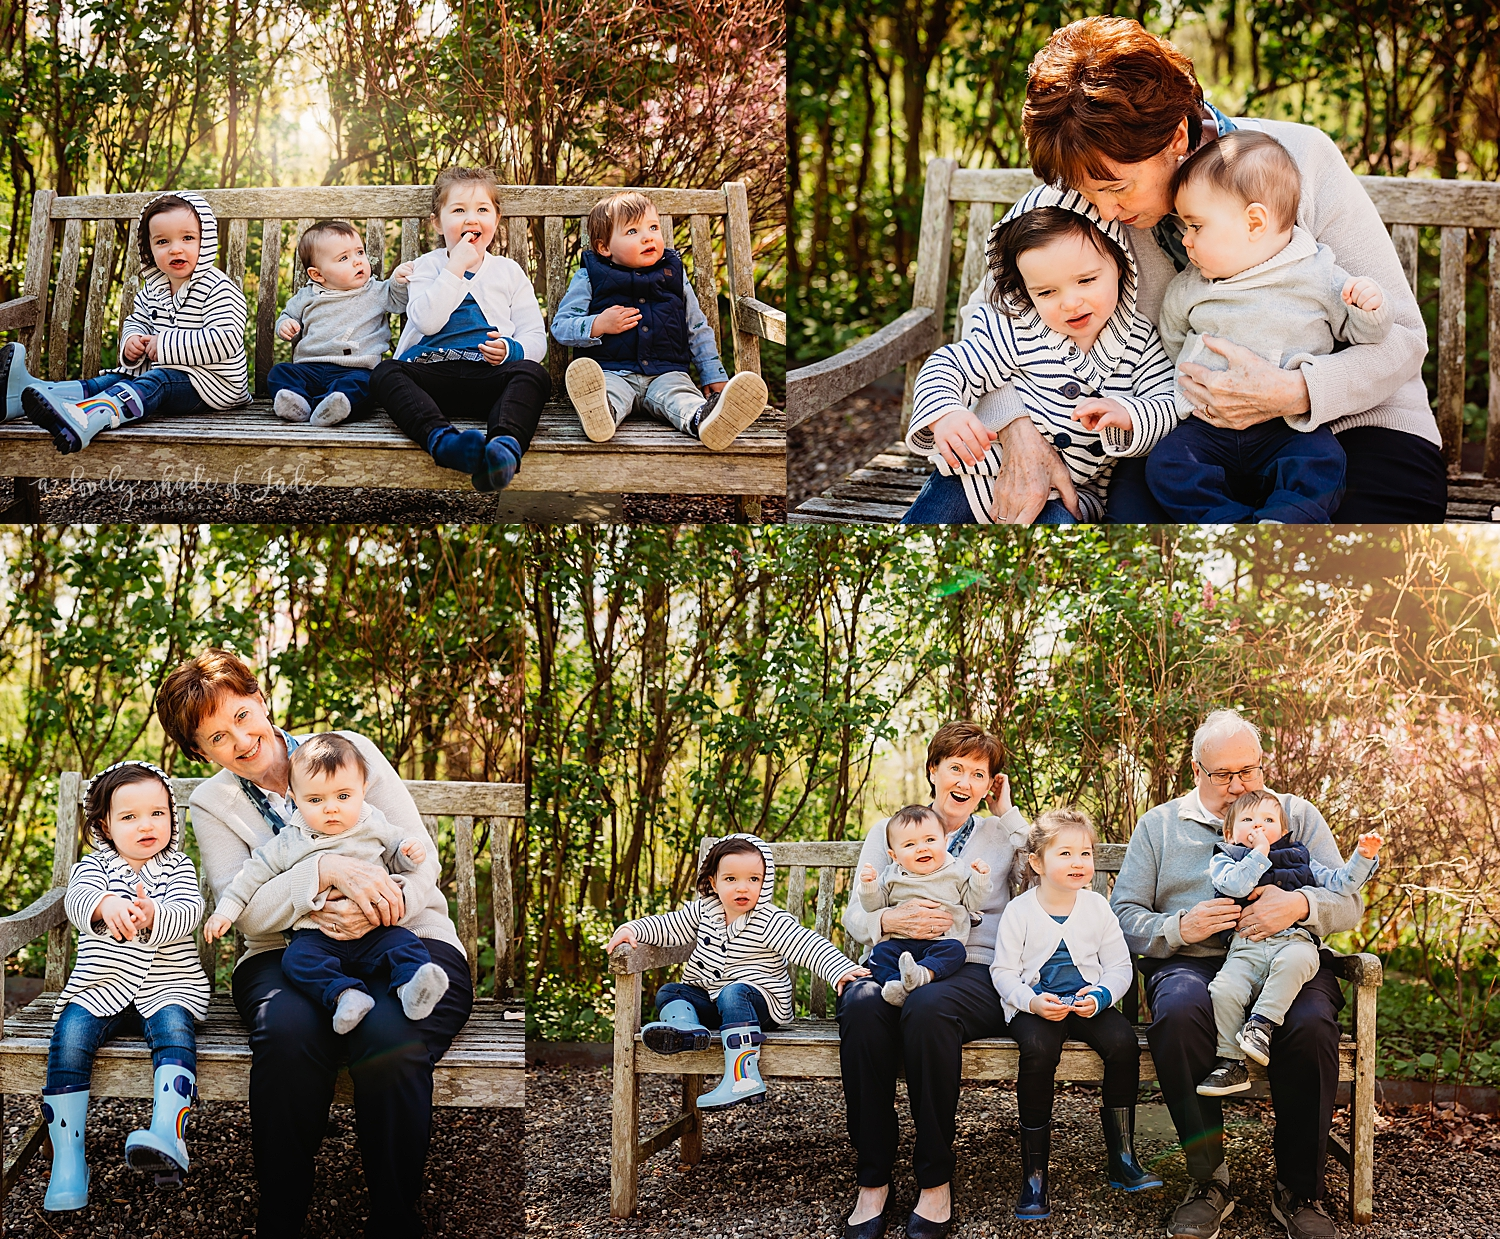 Extended_Family_Cross_Estates_Morristown_NJ_Photographer_0010.jpg